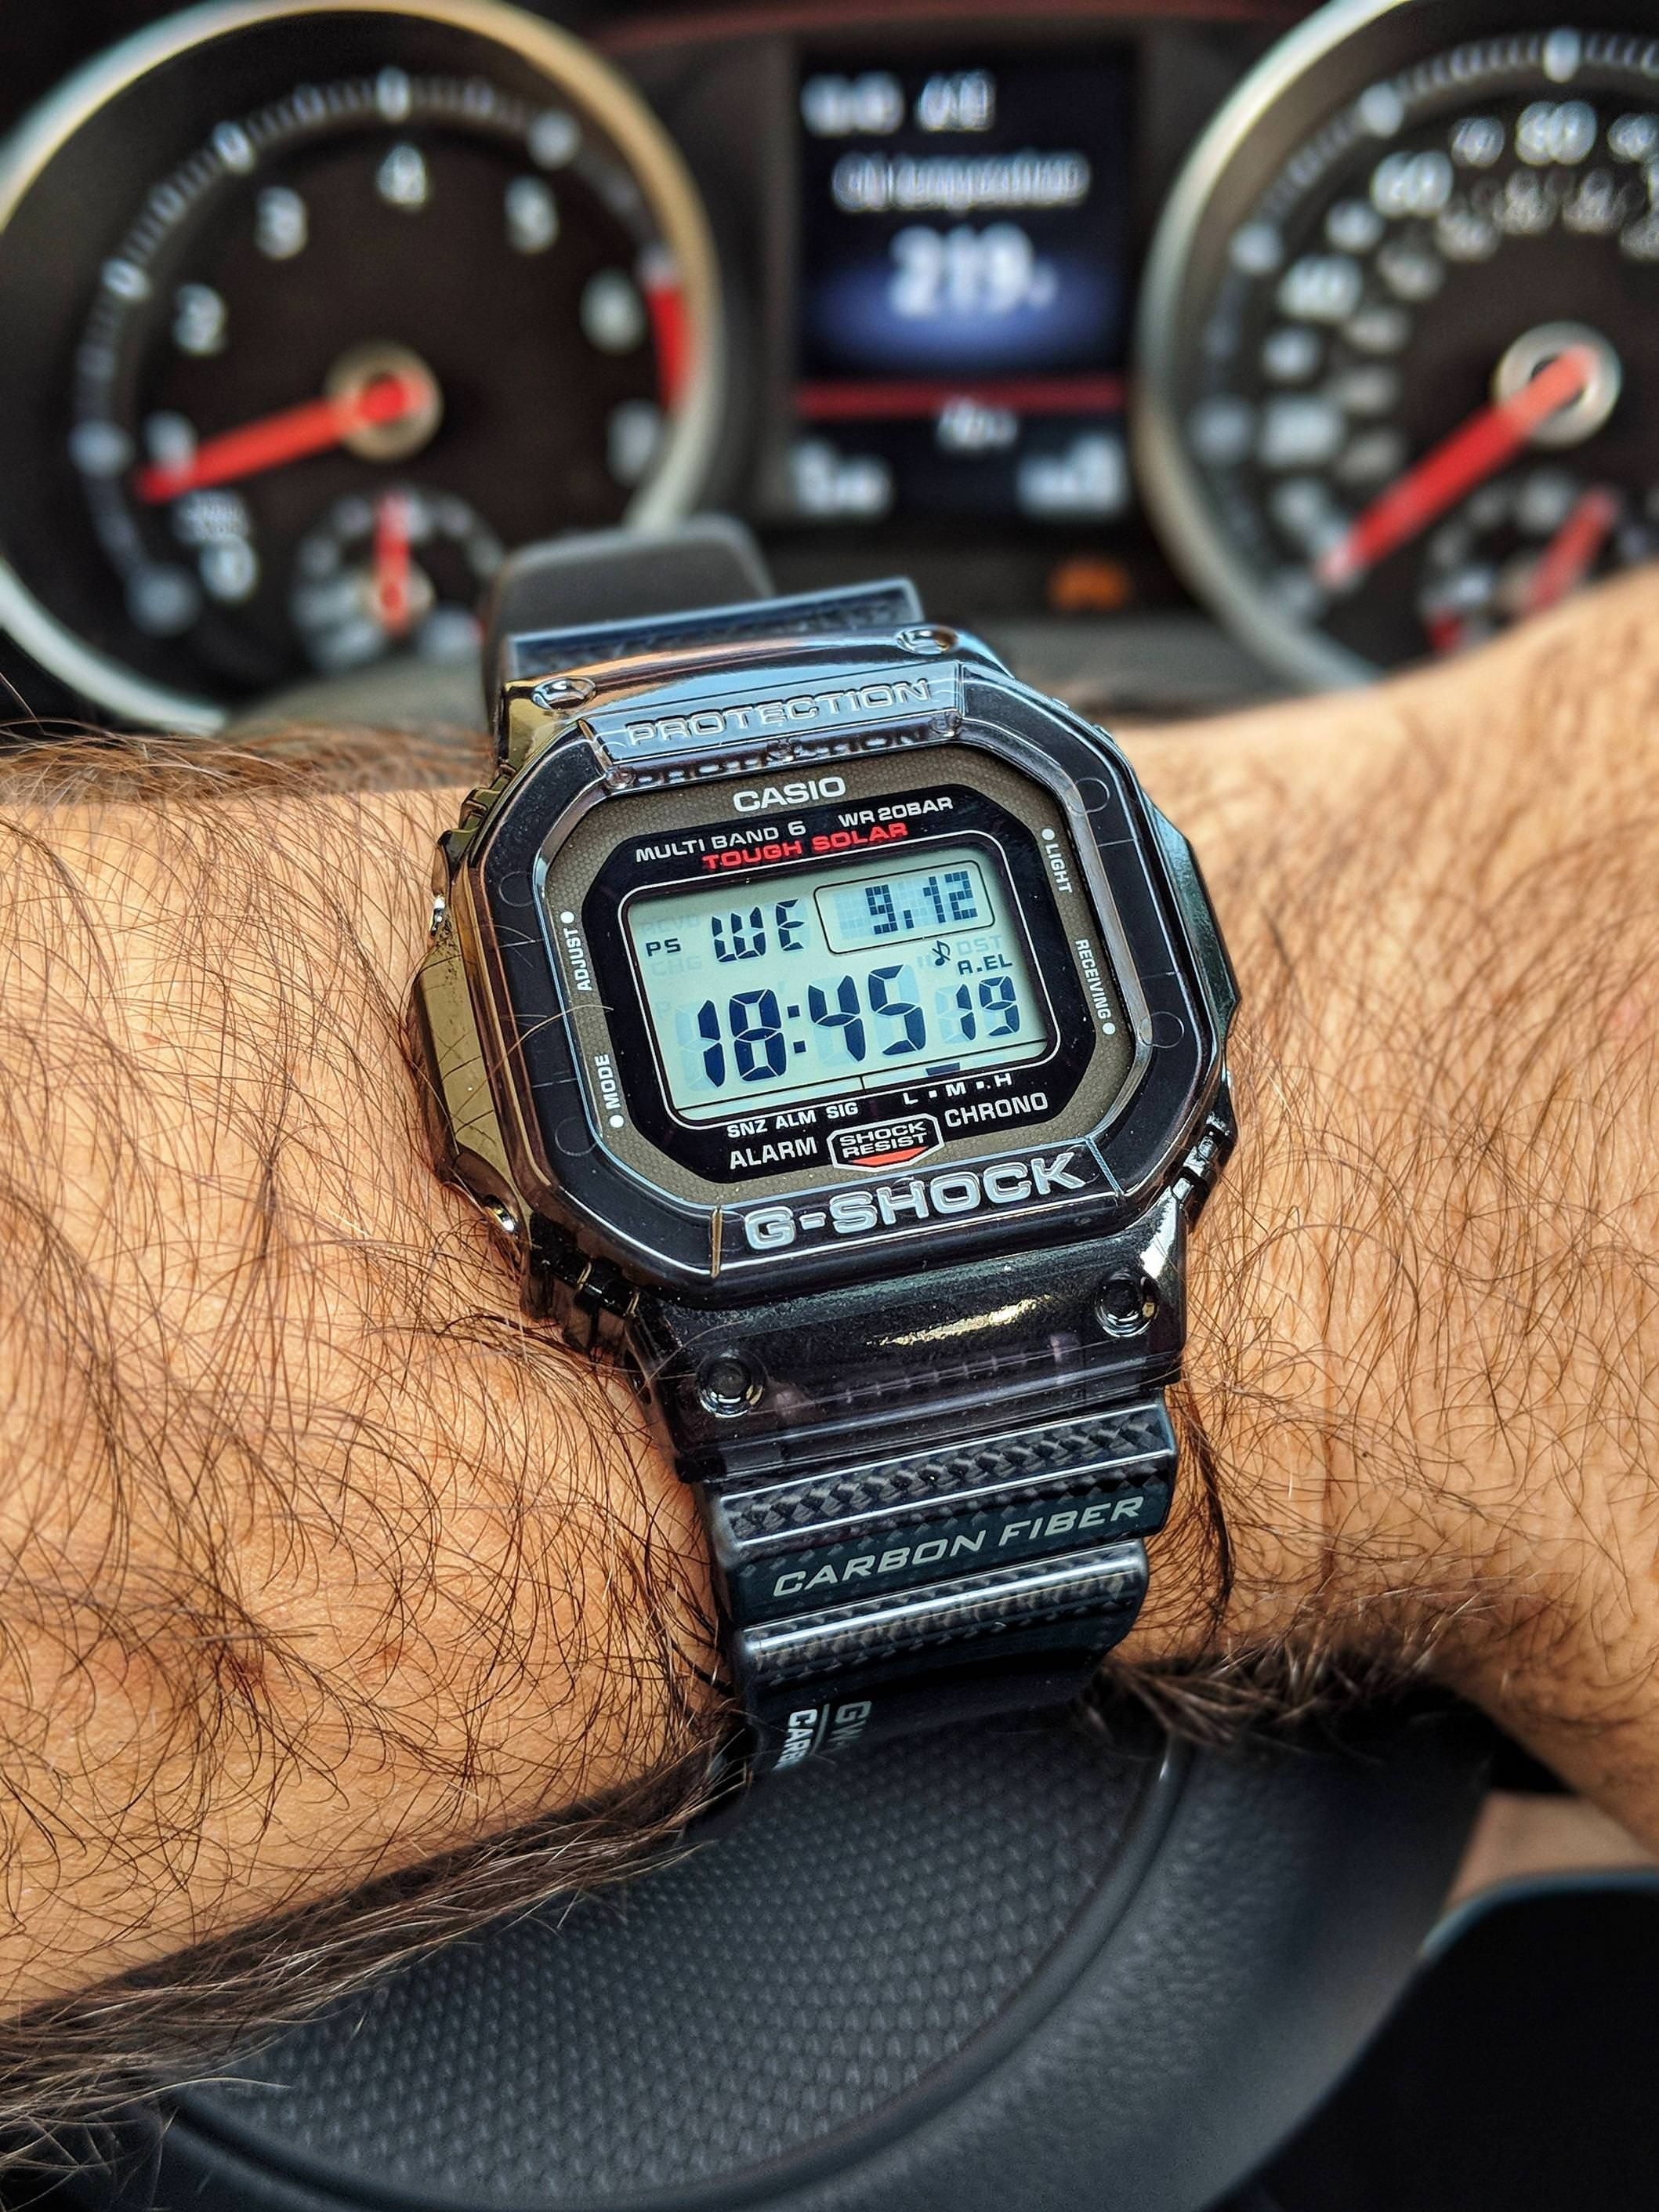 61b4324f00 Casio GW-S5600] Square Carbon Fiber! | Watches in 2019 | Casio ...